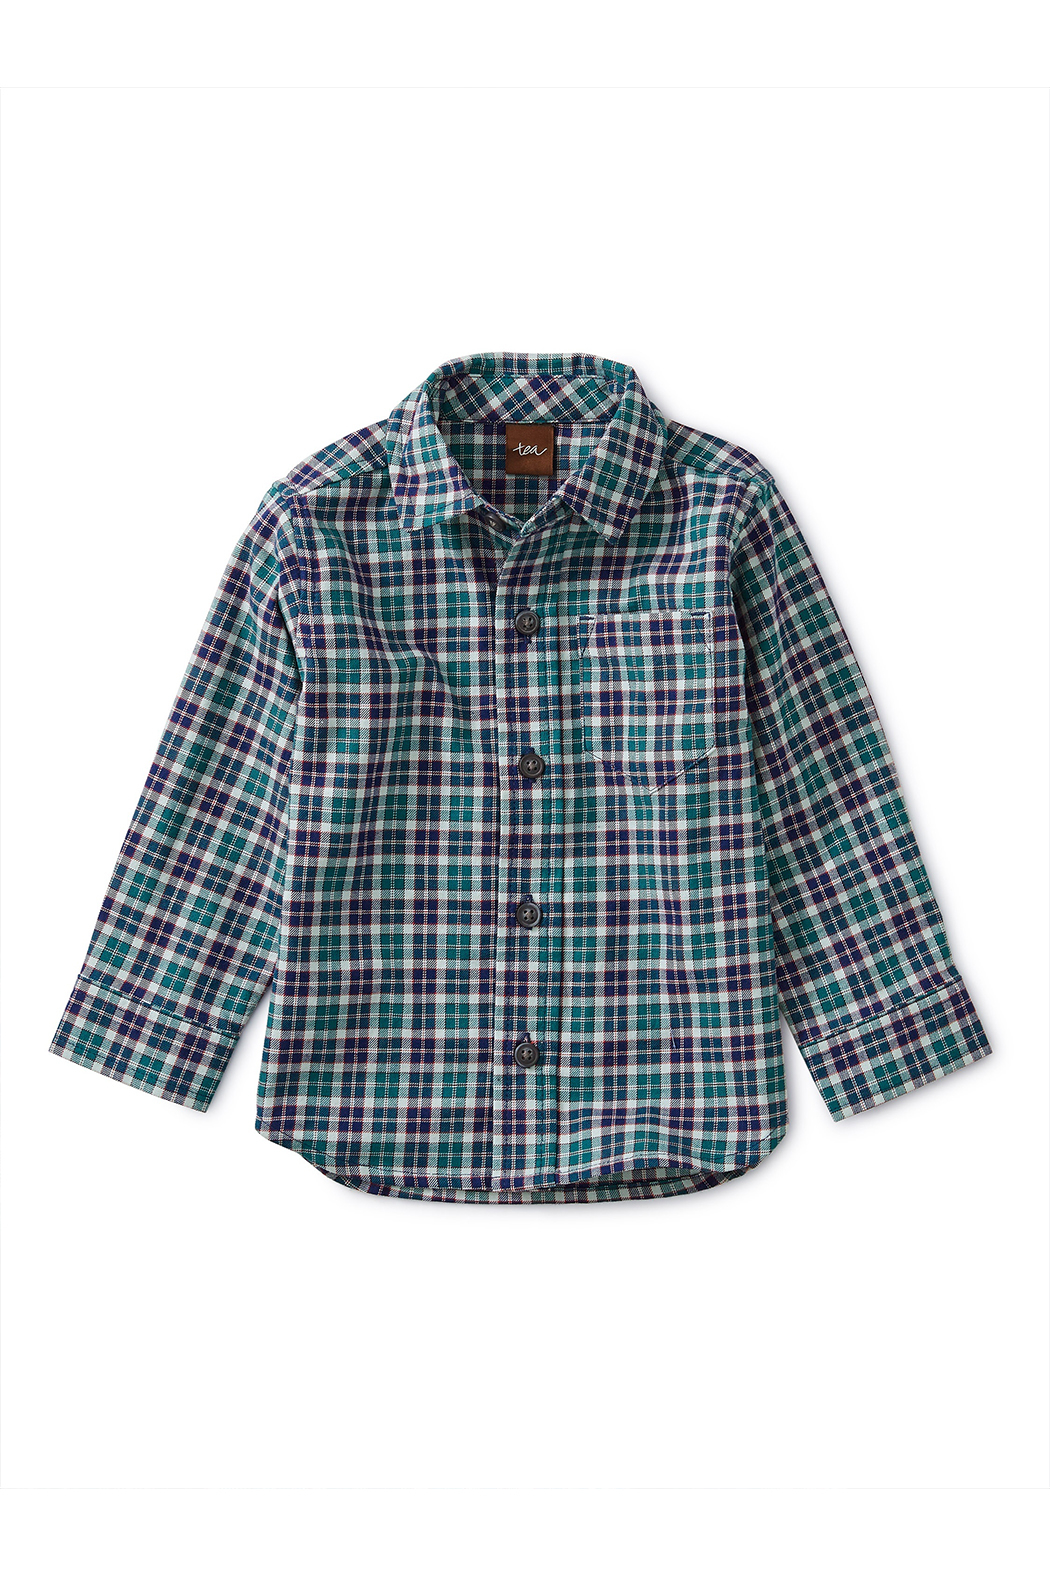 Tea Collection Patterned Button Up Baby Shirt - Main Image